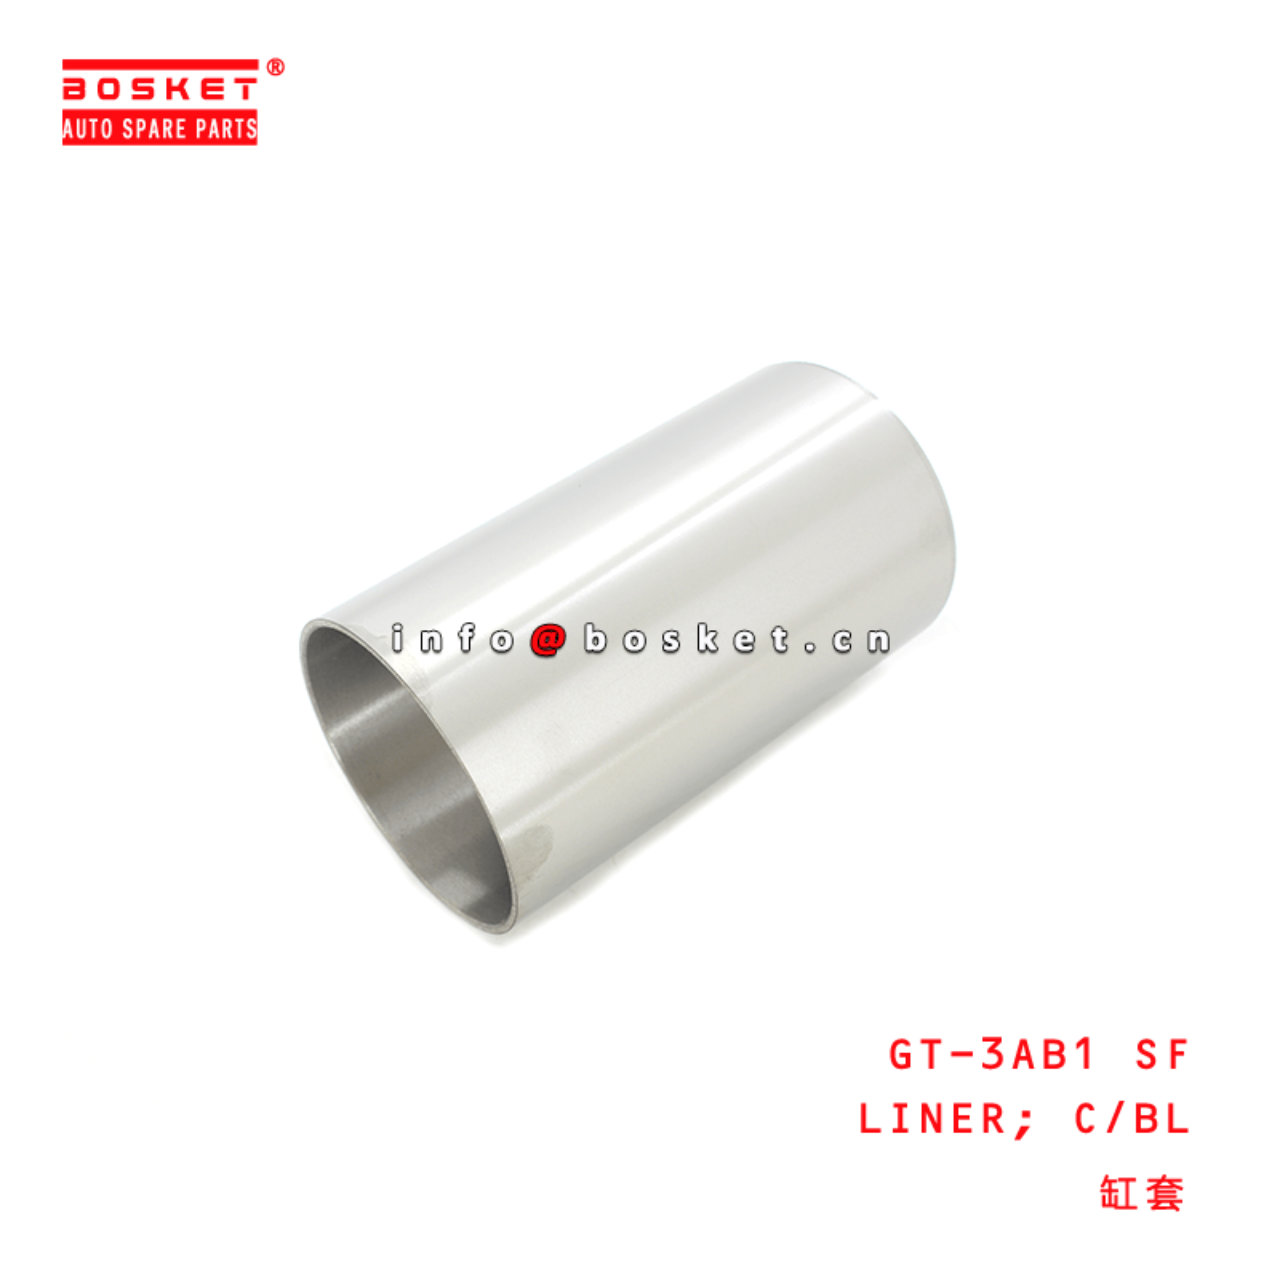 GT-3AB1 SF Cylinder Block Liner Suitable for ISUZU 3AB1